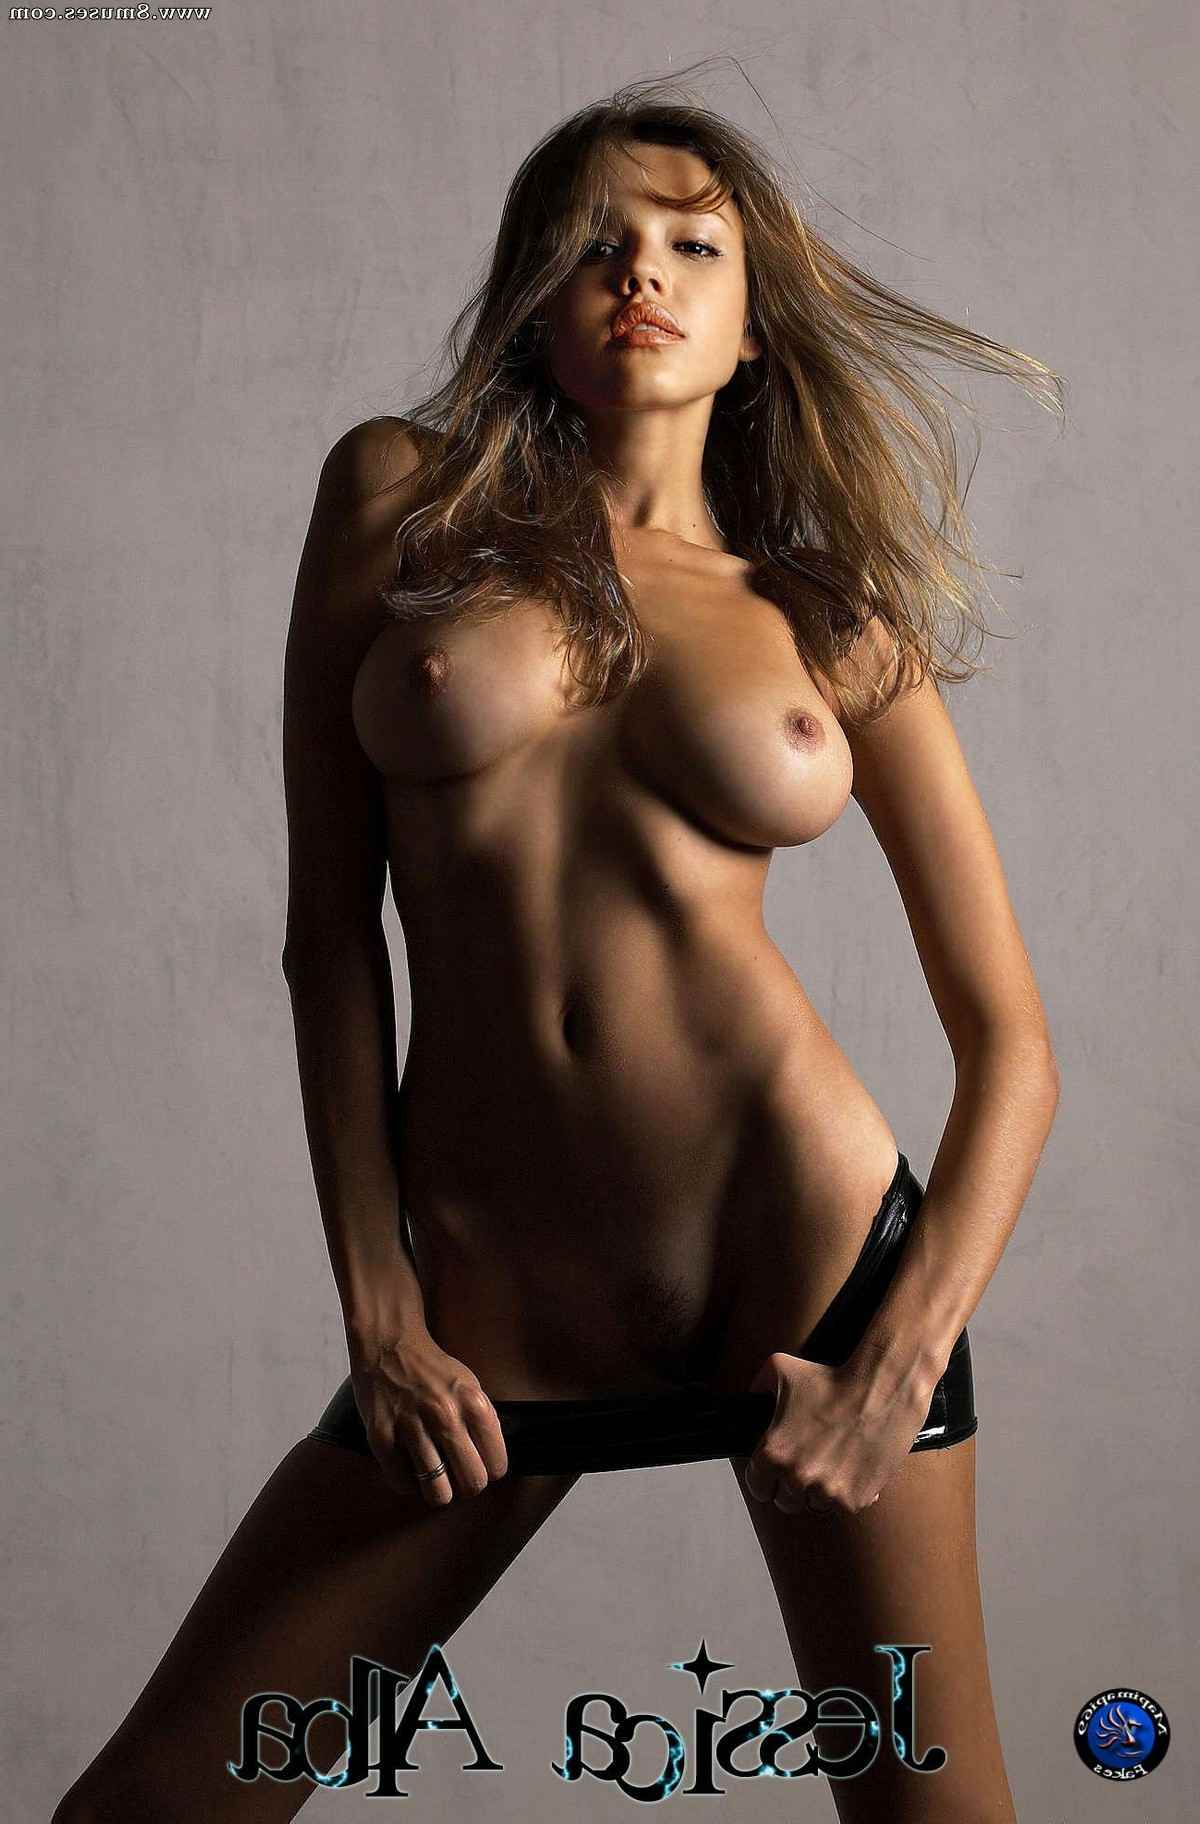 Fake-Celebrities-Sex-Pictures/Jessica-Alba Jessica_Alba__8muses_-_Sex_and_Porn_Comics_224.jpg